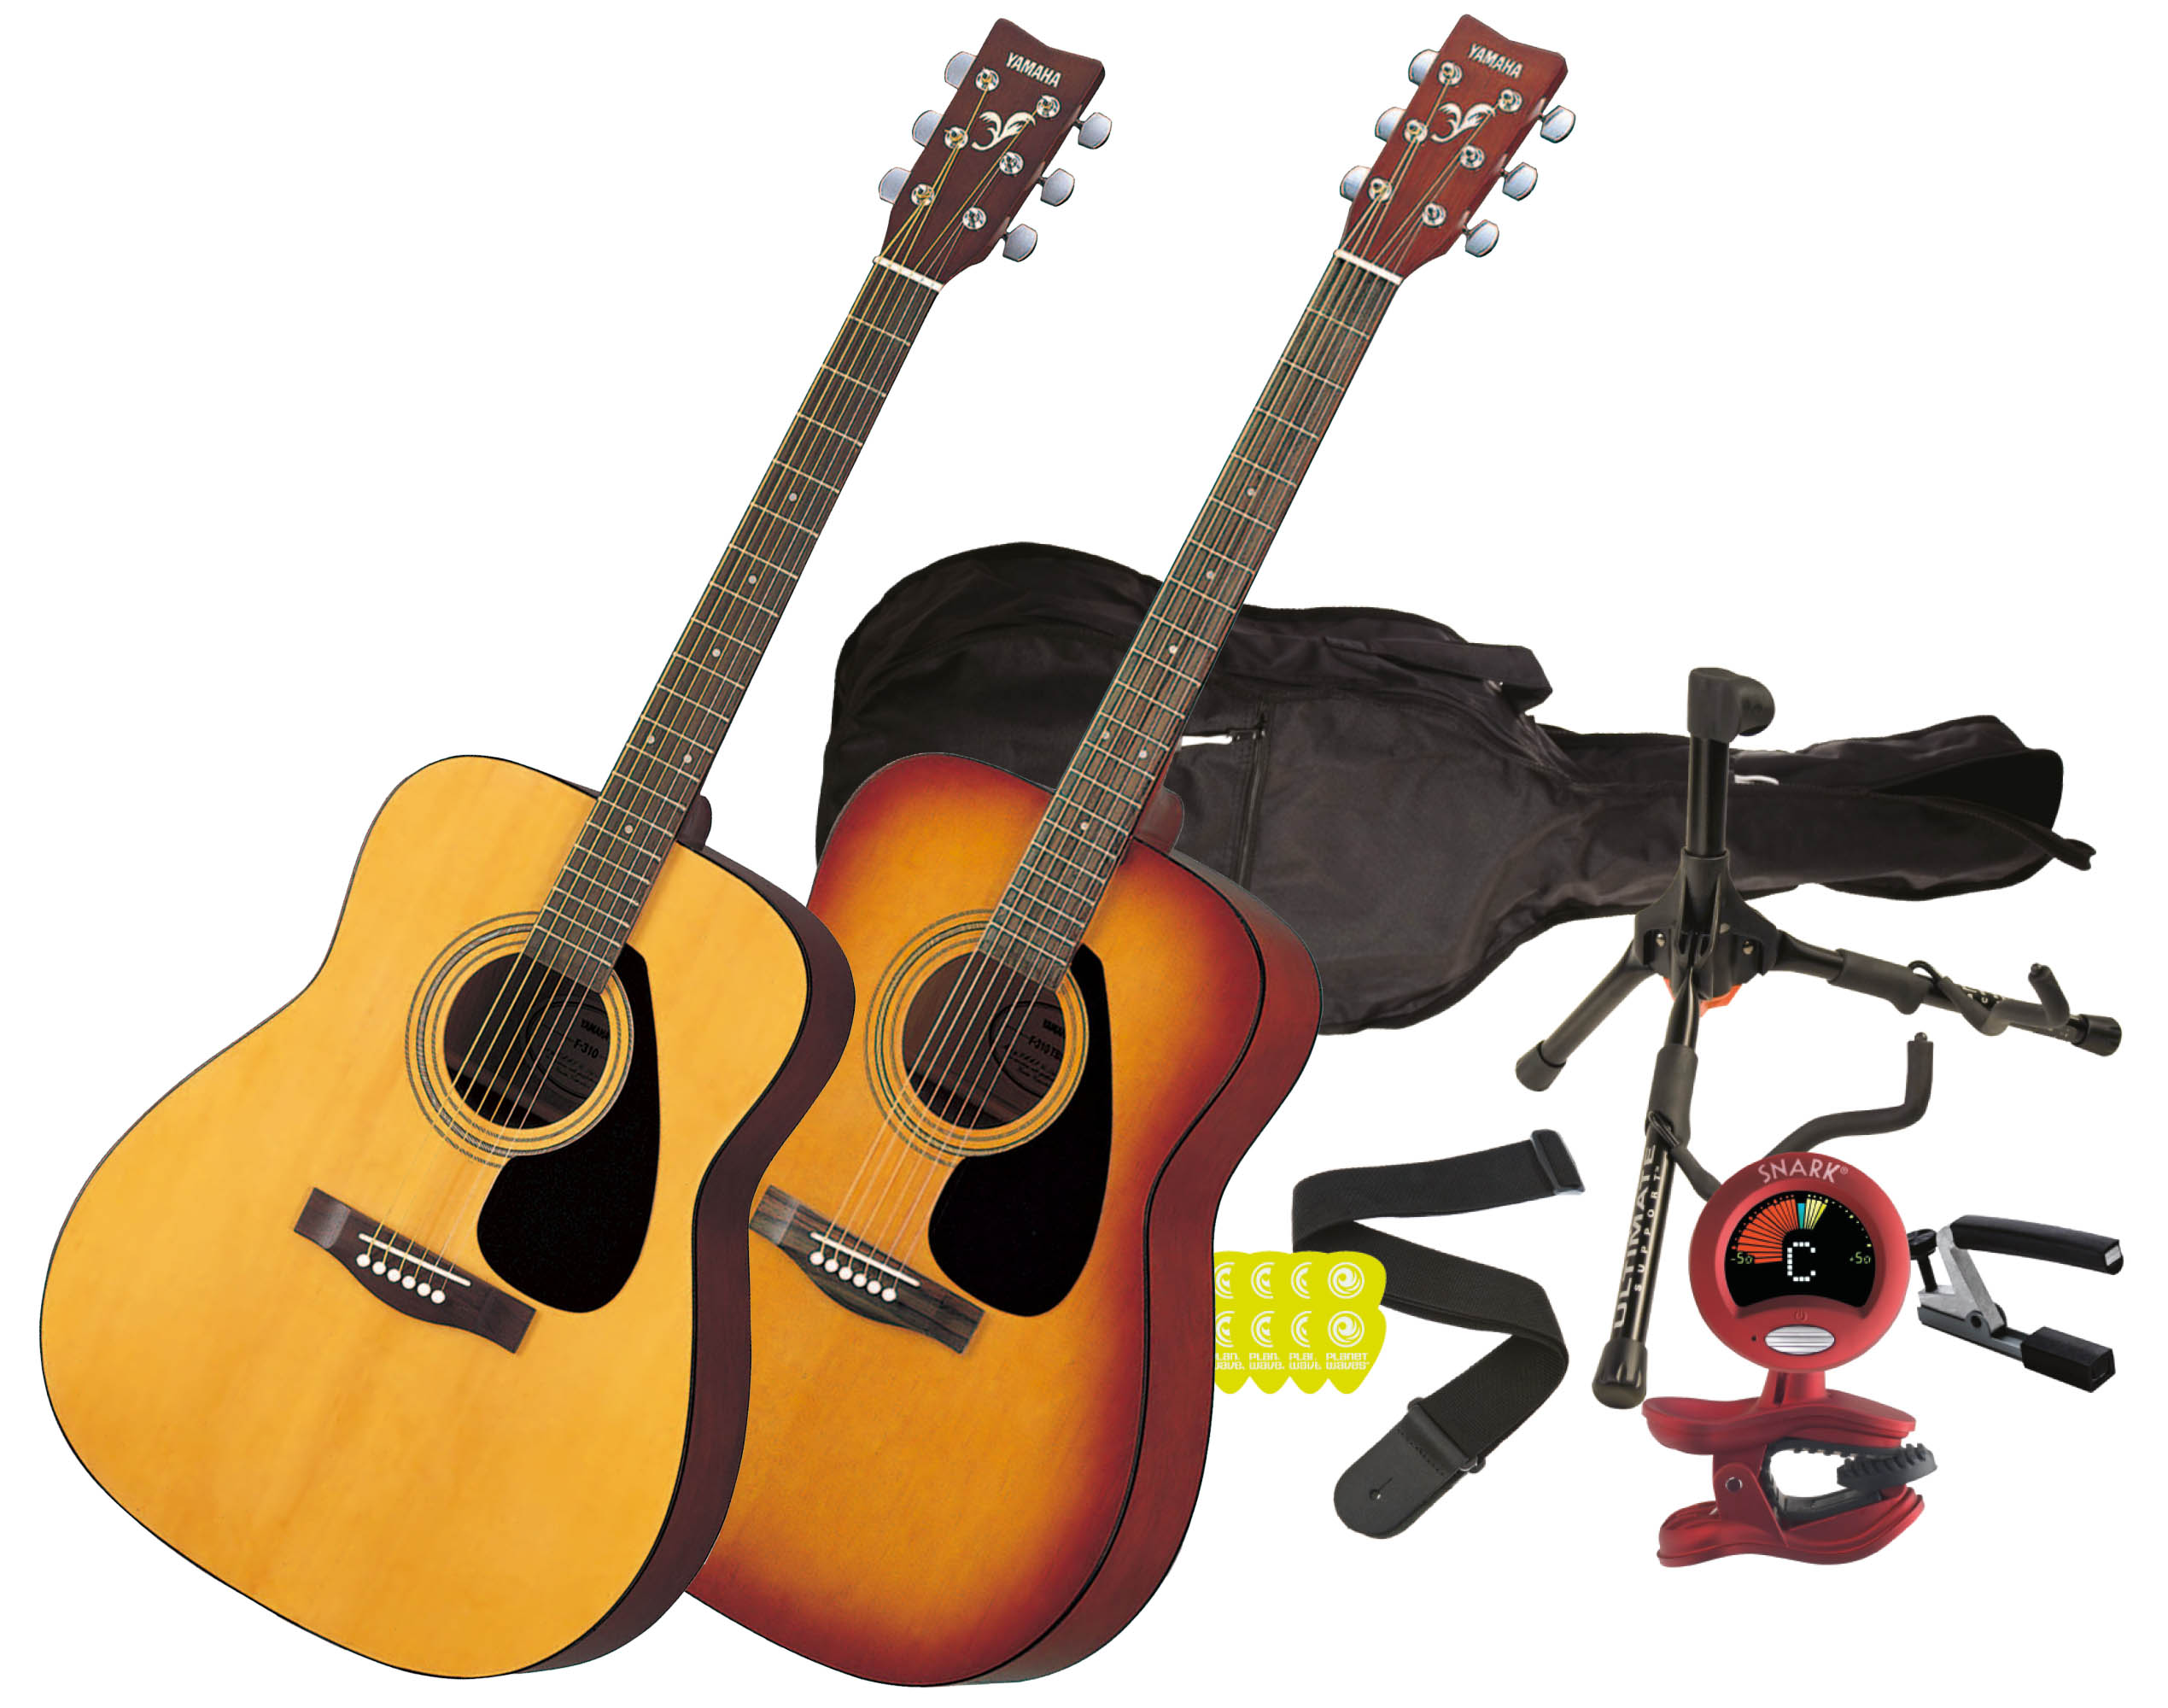 de32fcc7b82 Yamaha F310 Beginner Acoustic Guitar Package In Natural or Tobacco ...